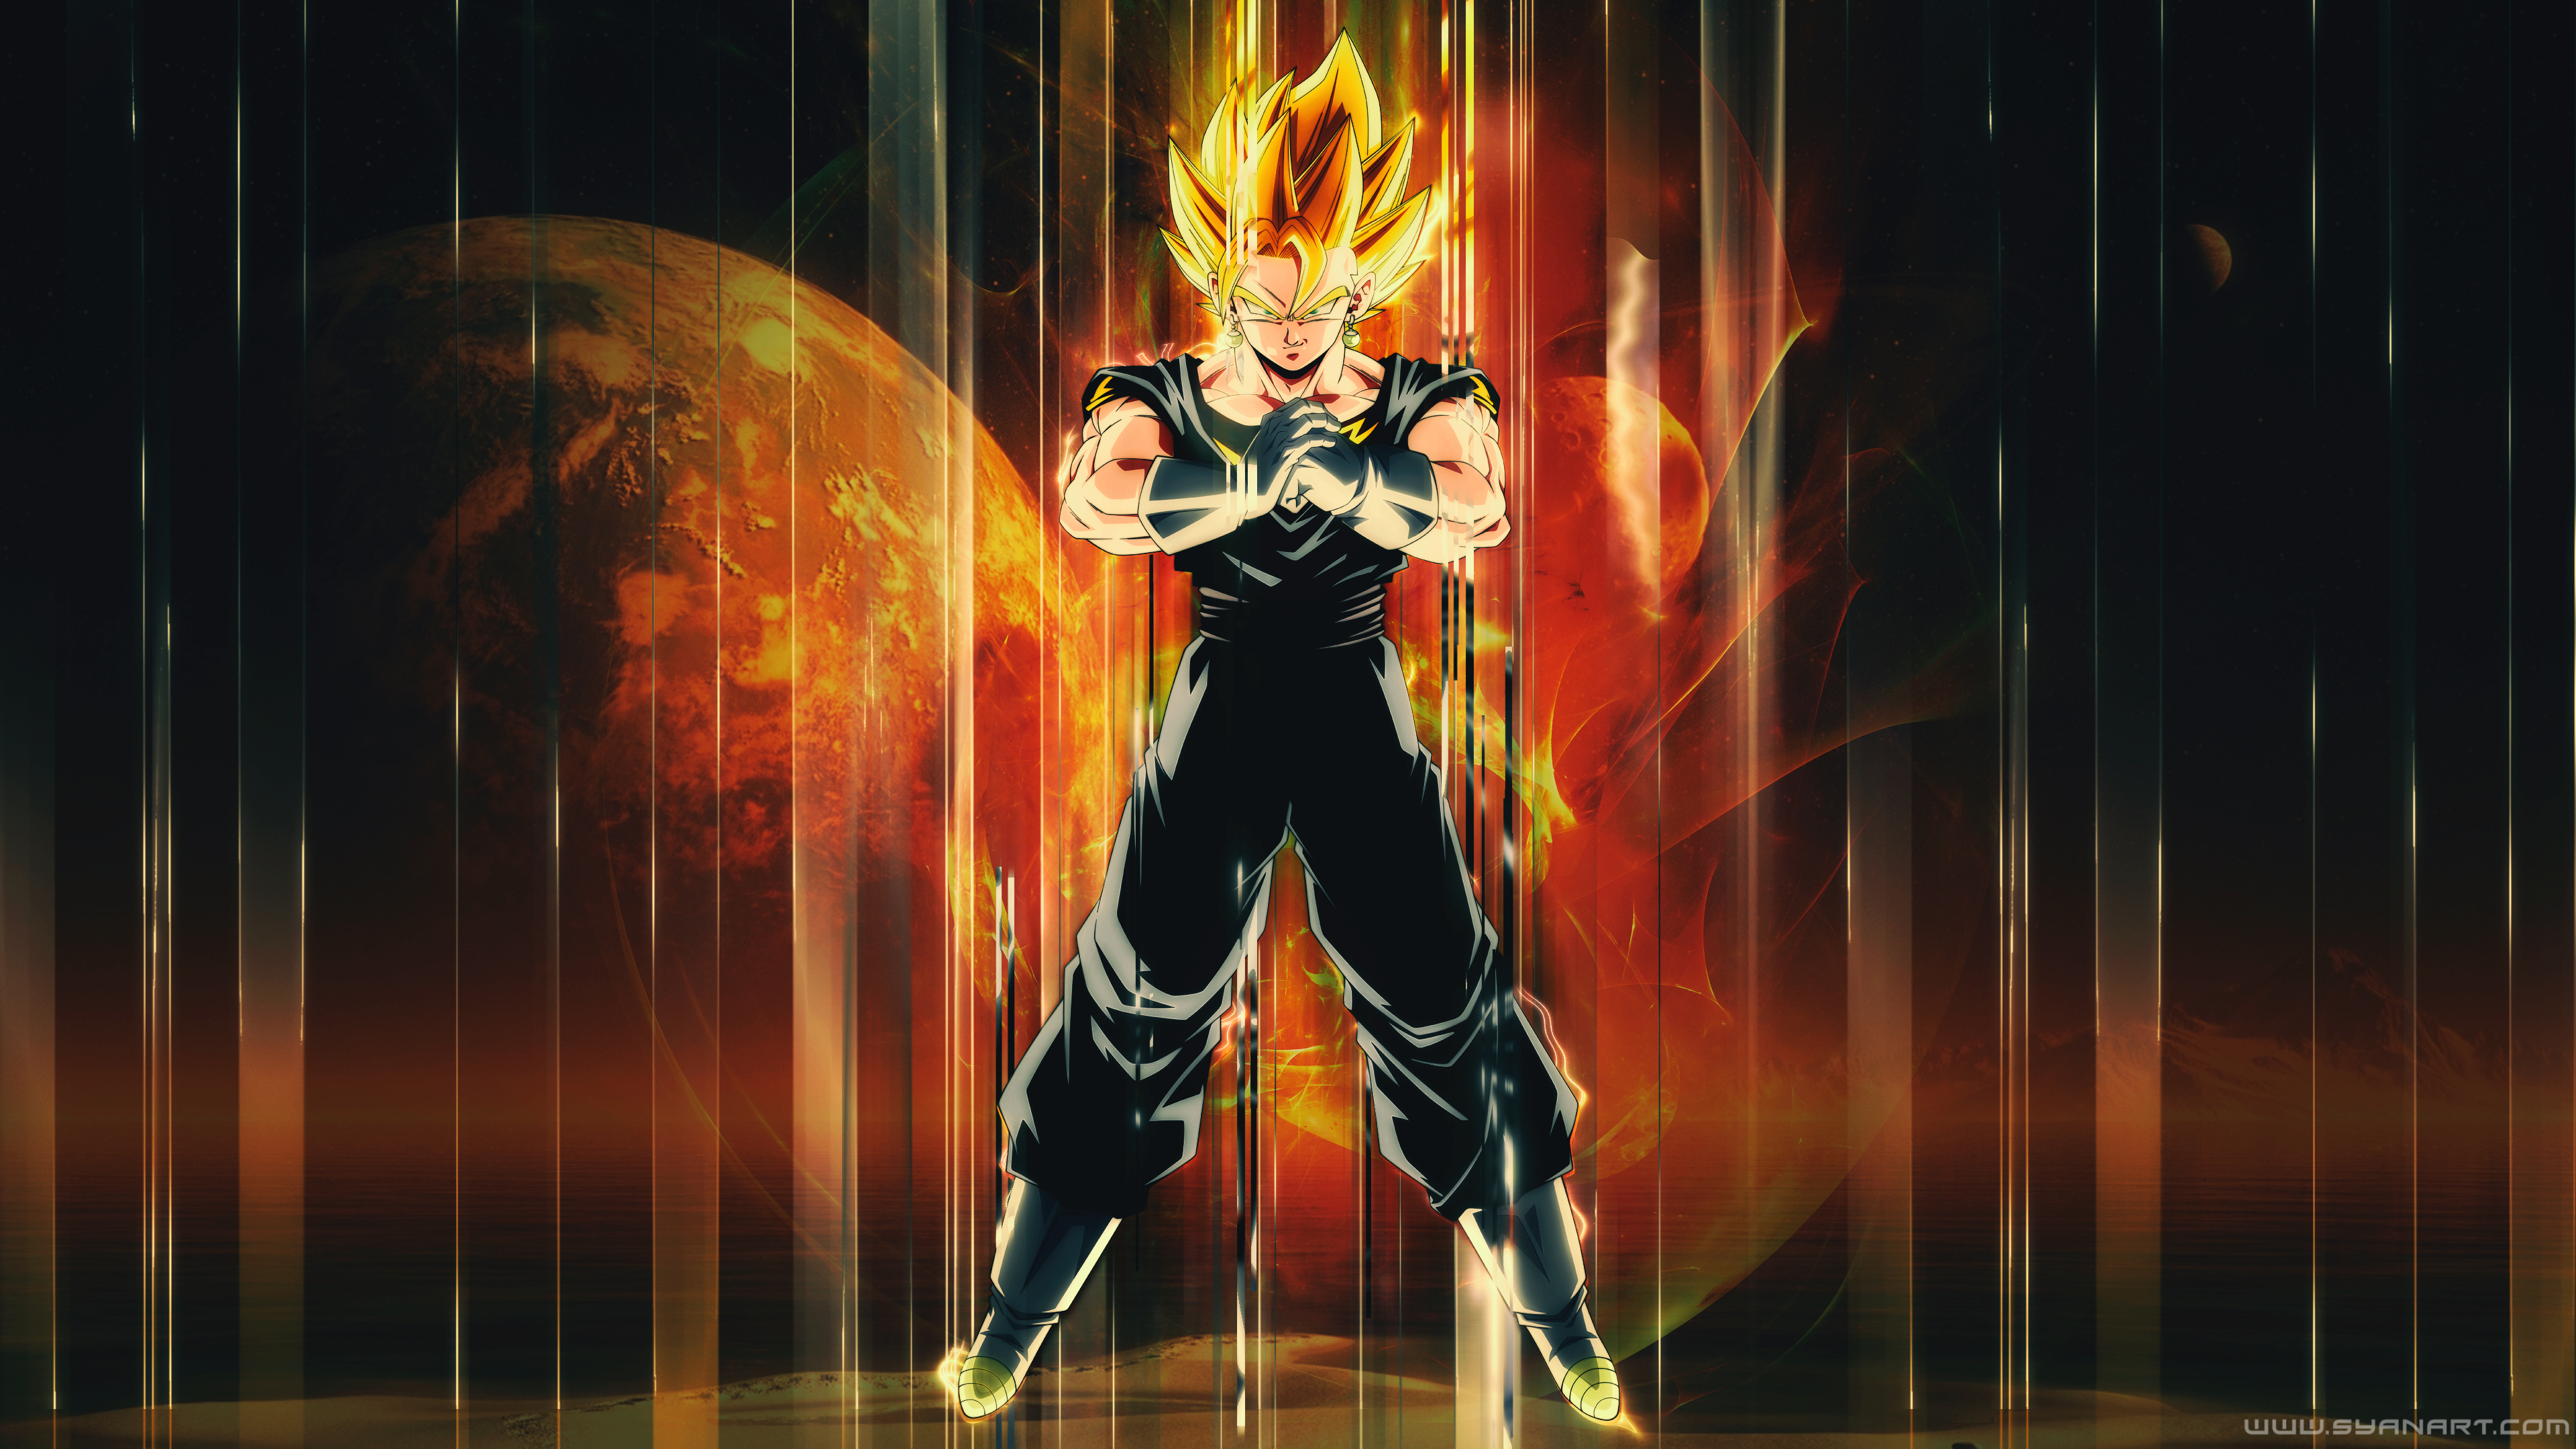 Dragon Ball Super Vegito 4k Wallpaper Syanart Station